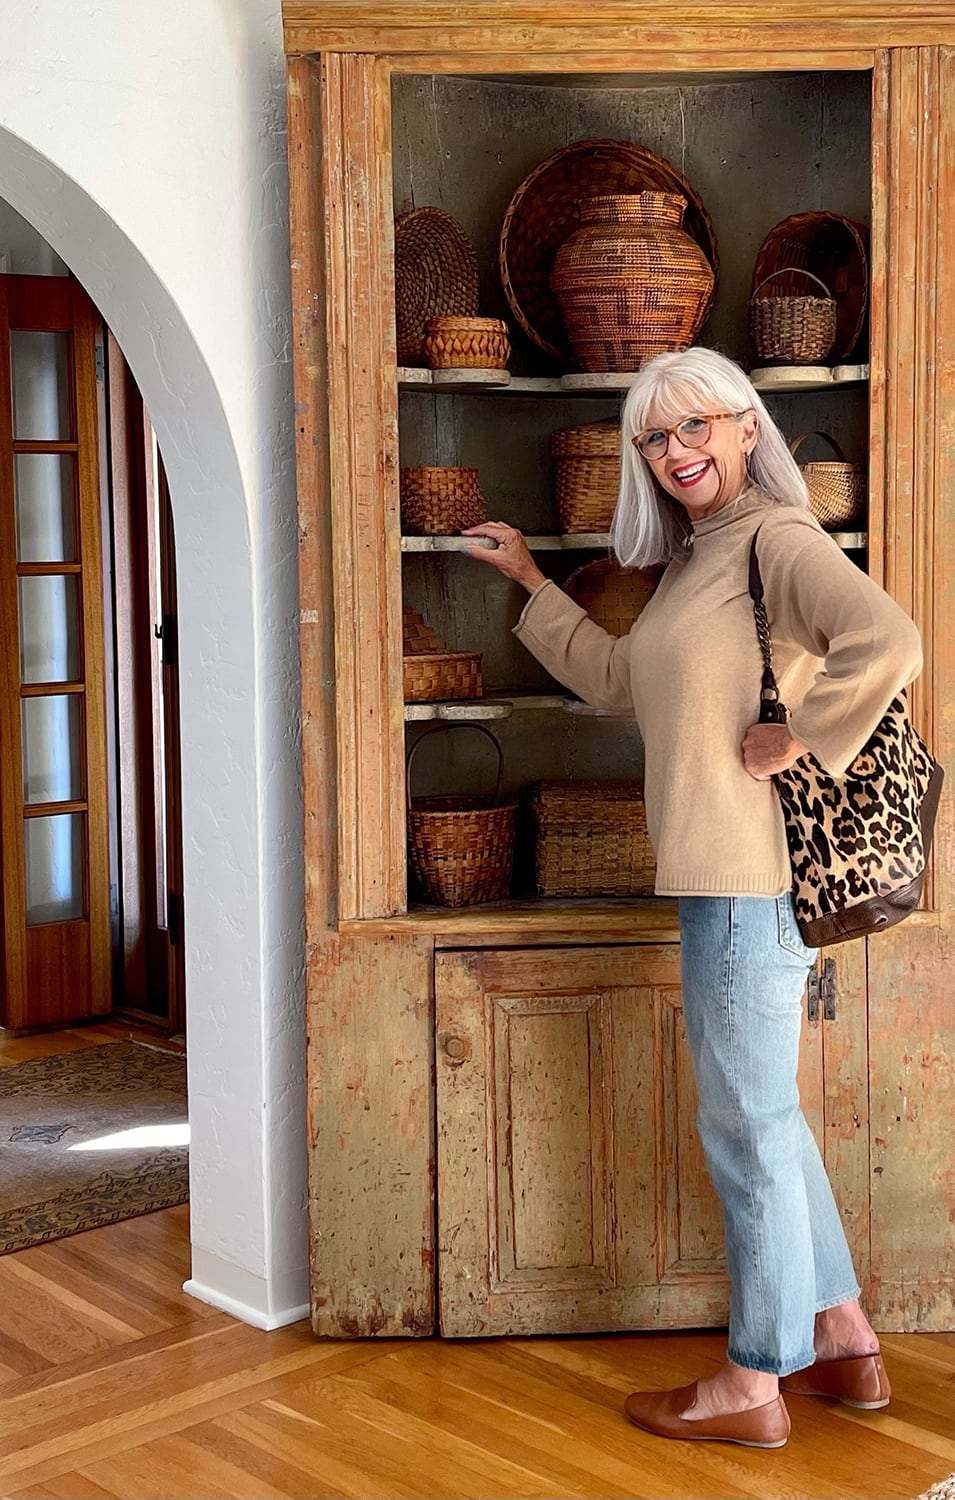 cindy hattersley in J Crew Jeans and Sweater